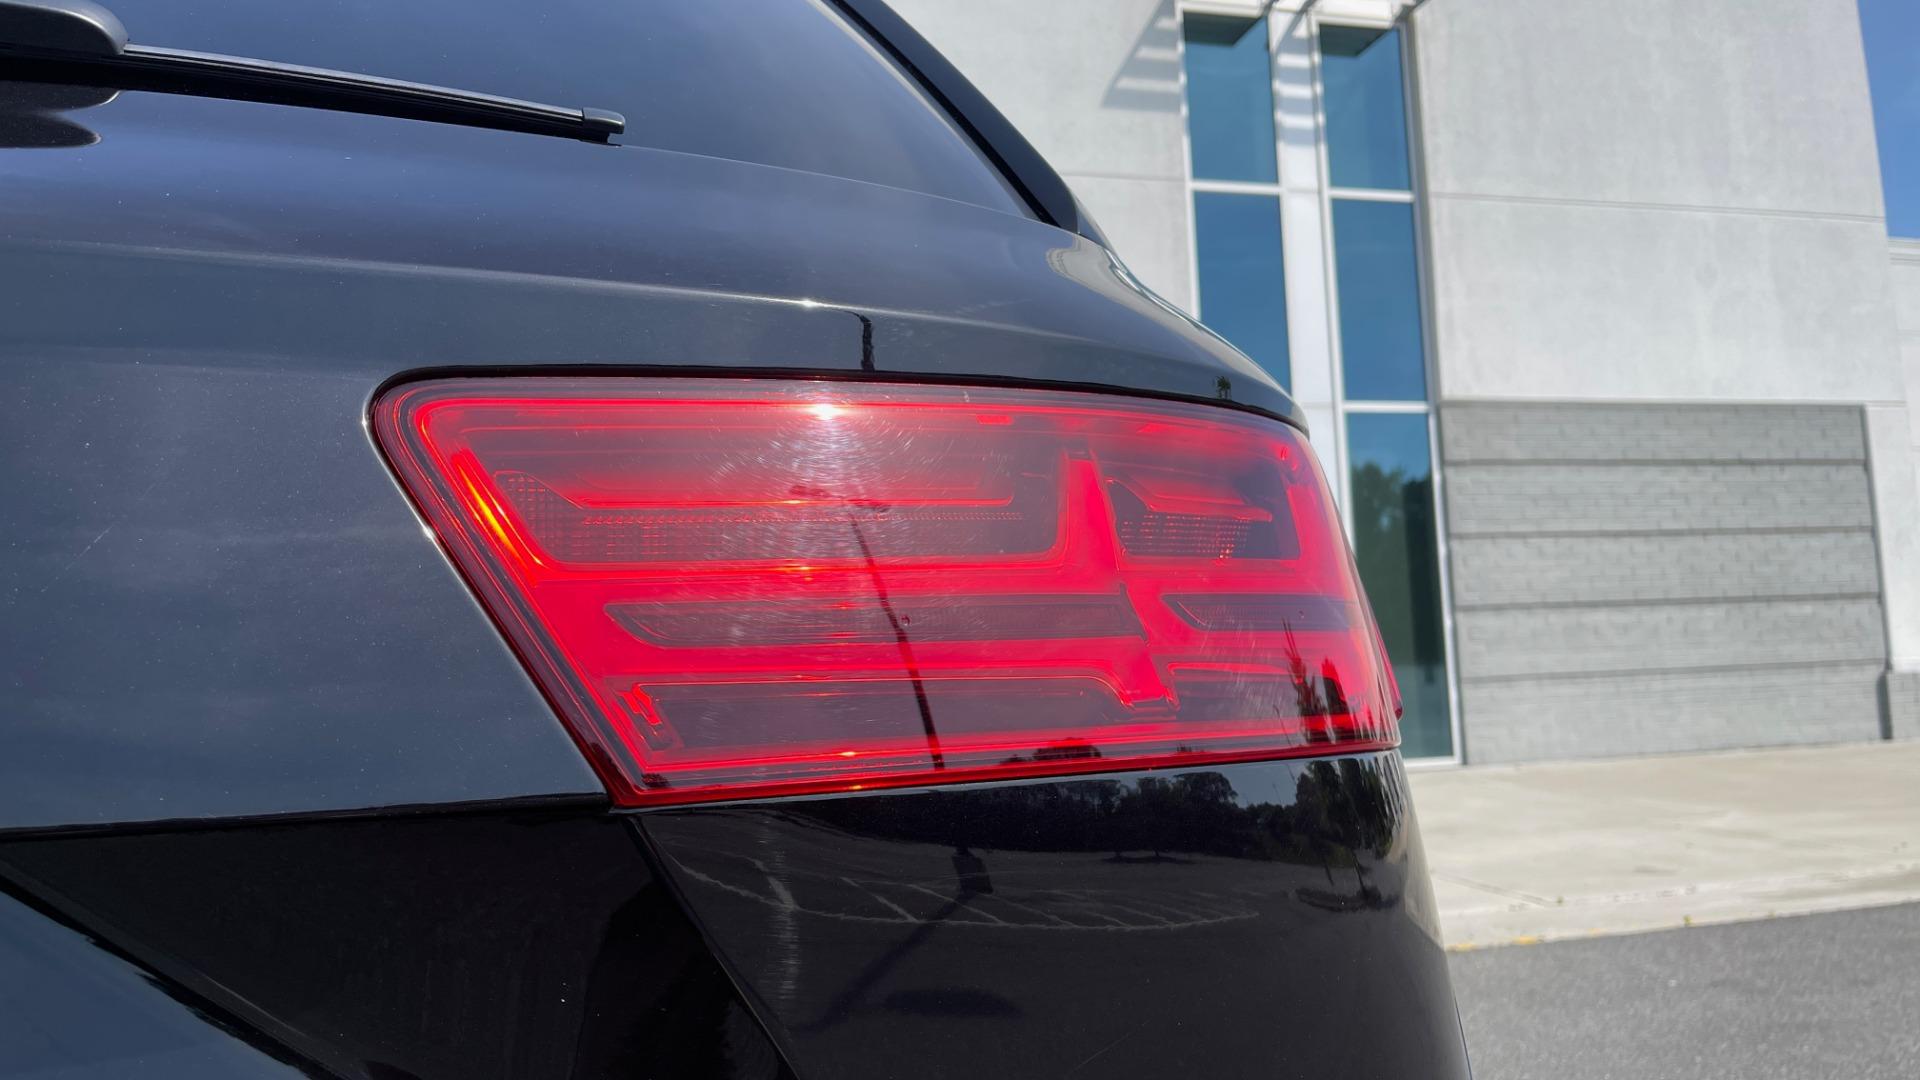 Used 2018 Audi Q7 PREMIUM PLUS / NAV / PANO-ROOF / BOSE / 3-ROW / REARVIEW for sale $43,461 at Formula Imports in Charlotte NC 28227 22